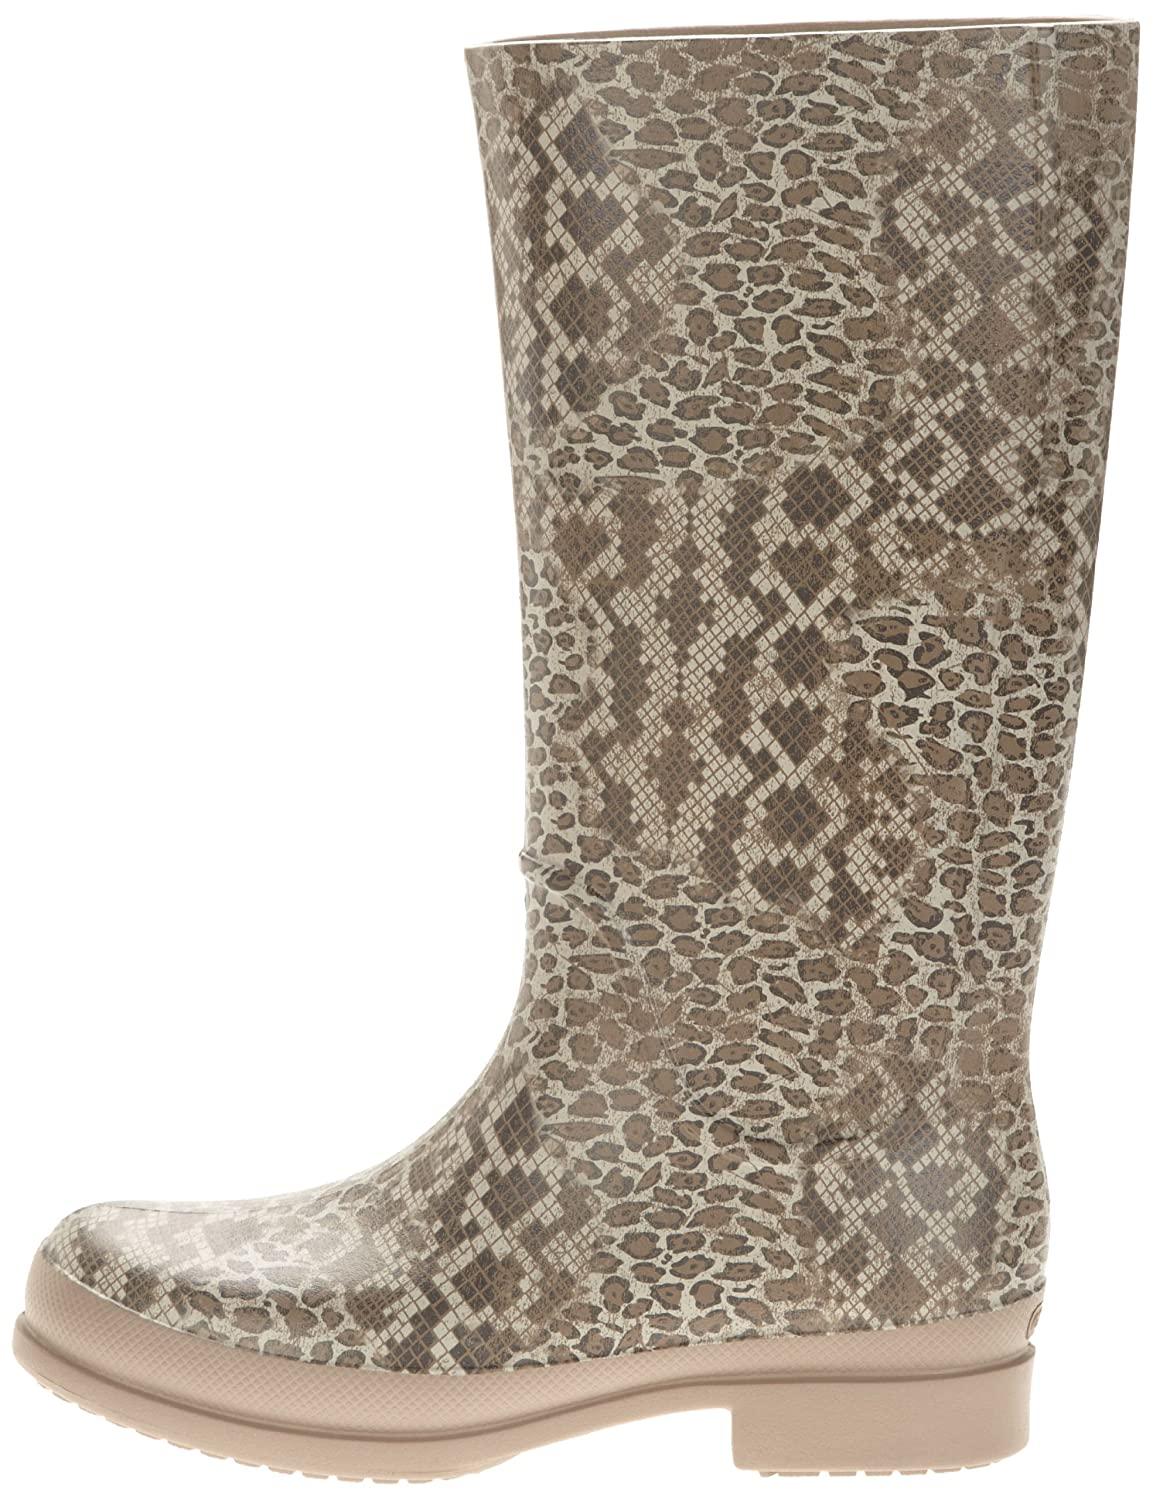 Crocs Leopard Print Tall Boot Damen 38EU